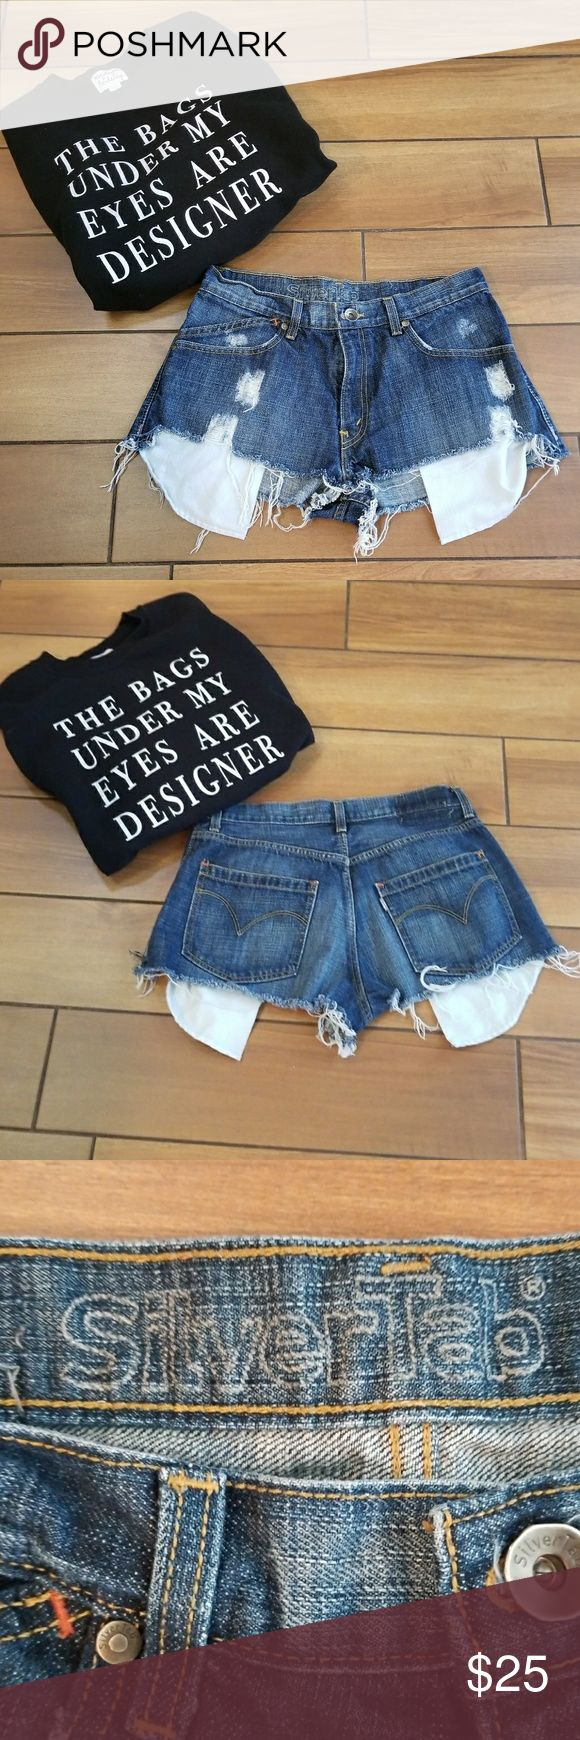 Distressed Levi denim shorts Zip up , super cute for summer , can be dressed up or down, silver tab size w 32 , sweatshirt not for sale Levi's Shorts Jean Shorts